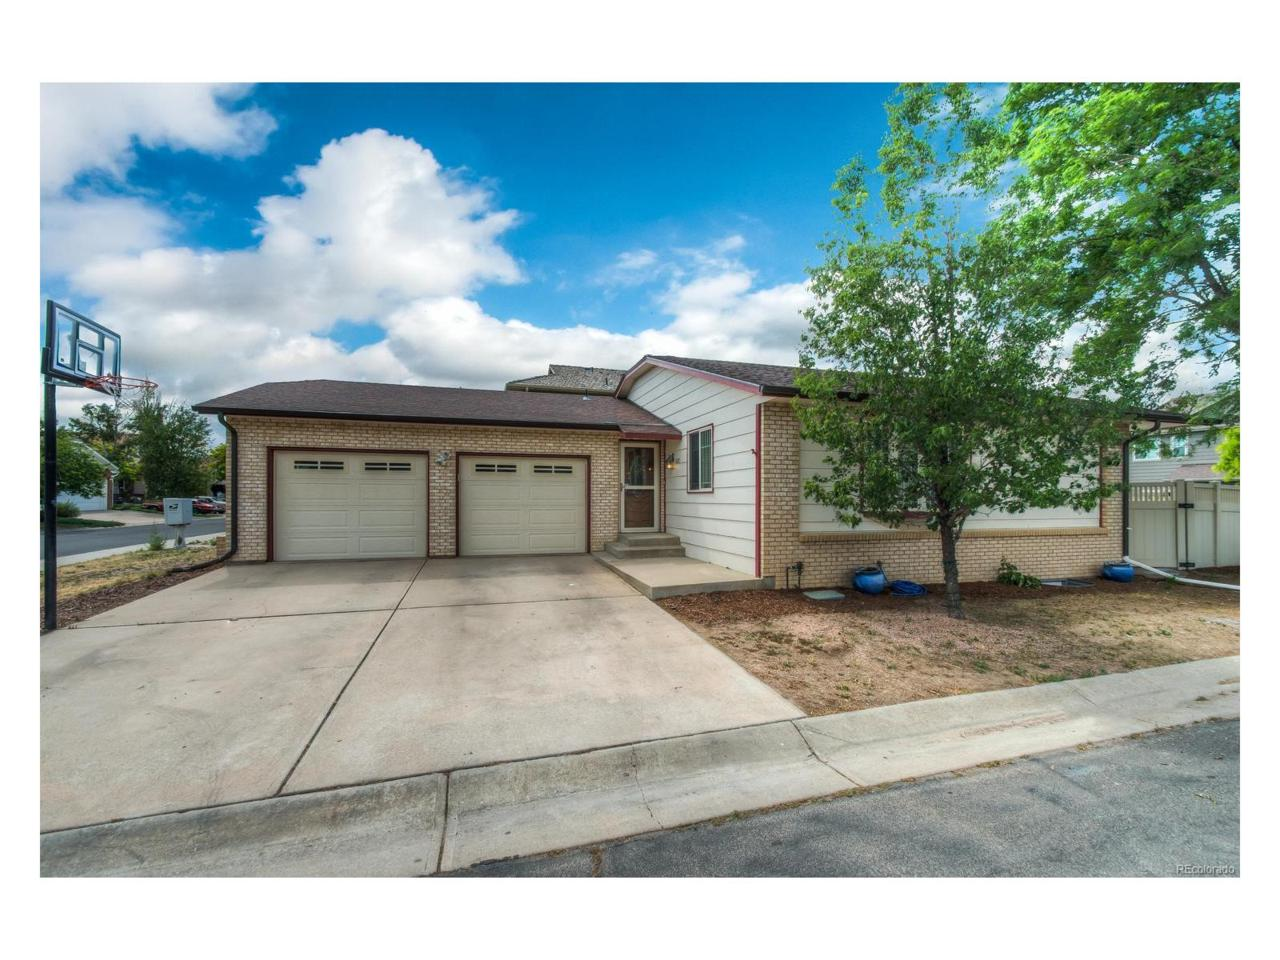 1685 August Lane, Brighton, CO 80601 (MLS #5286217) :: 8z Real Estate